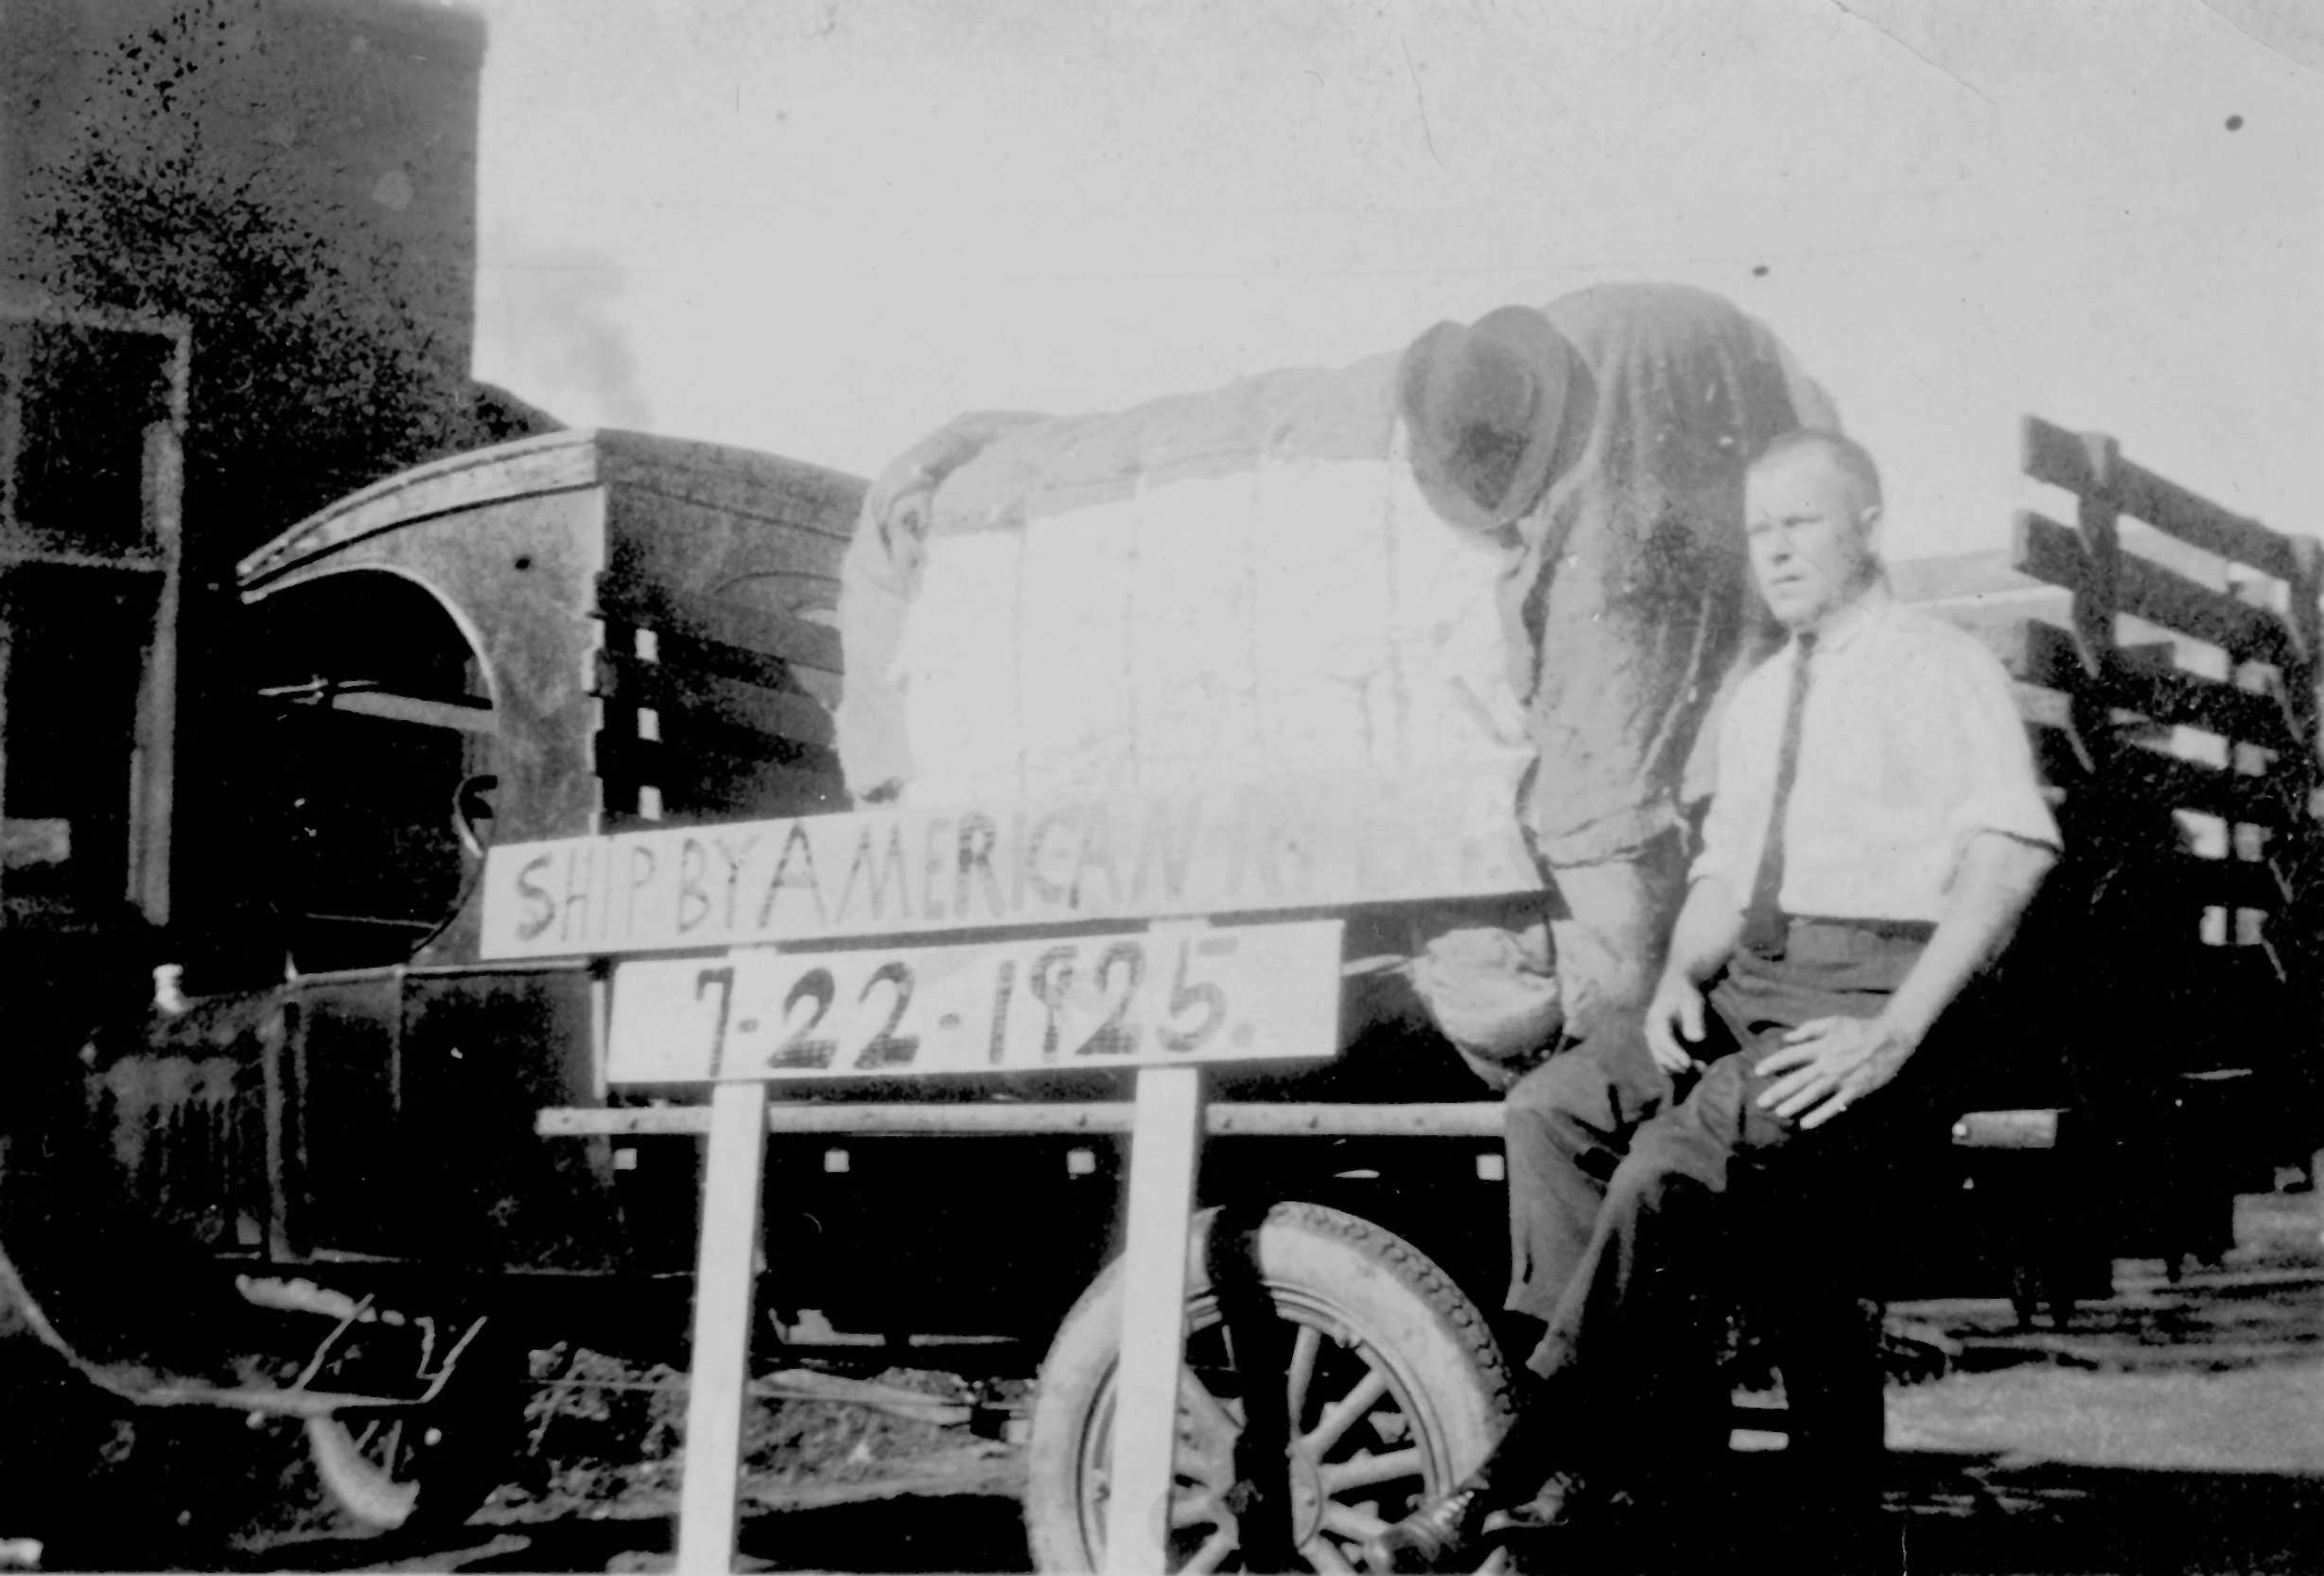 Henry W. Arnold, Sr., sitting on bed of Ford truck with bale of cotton